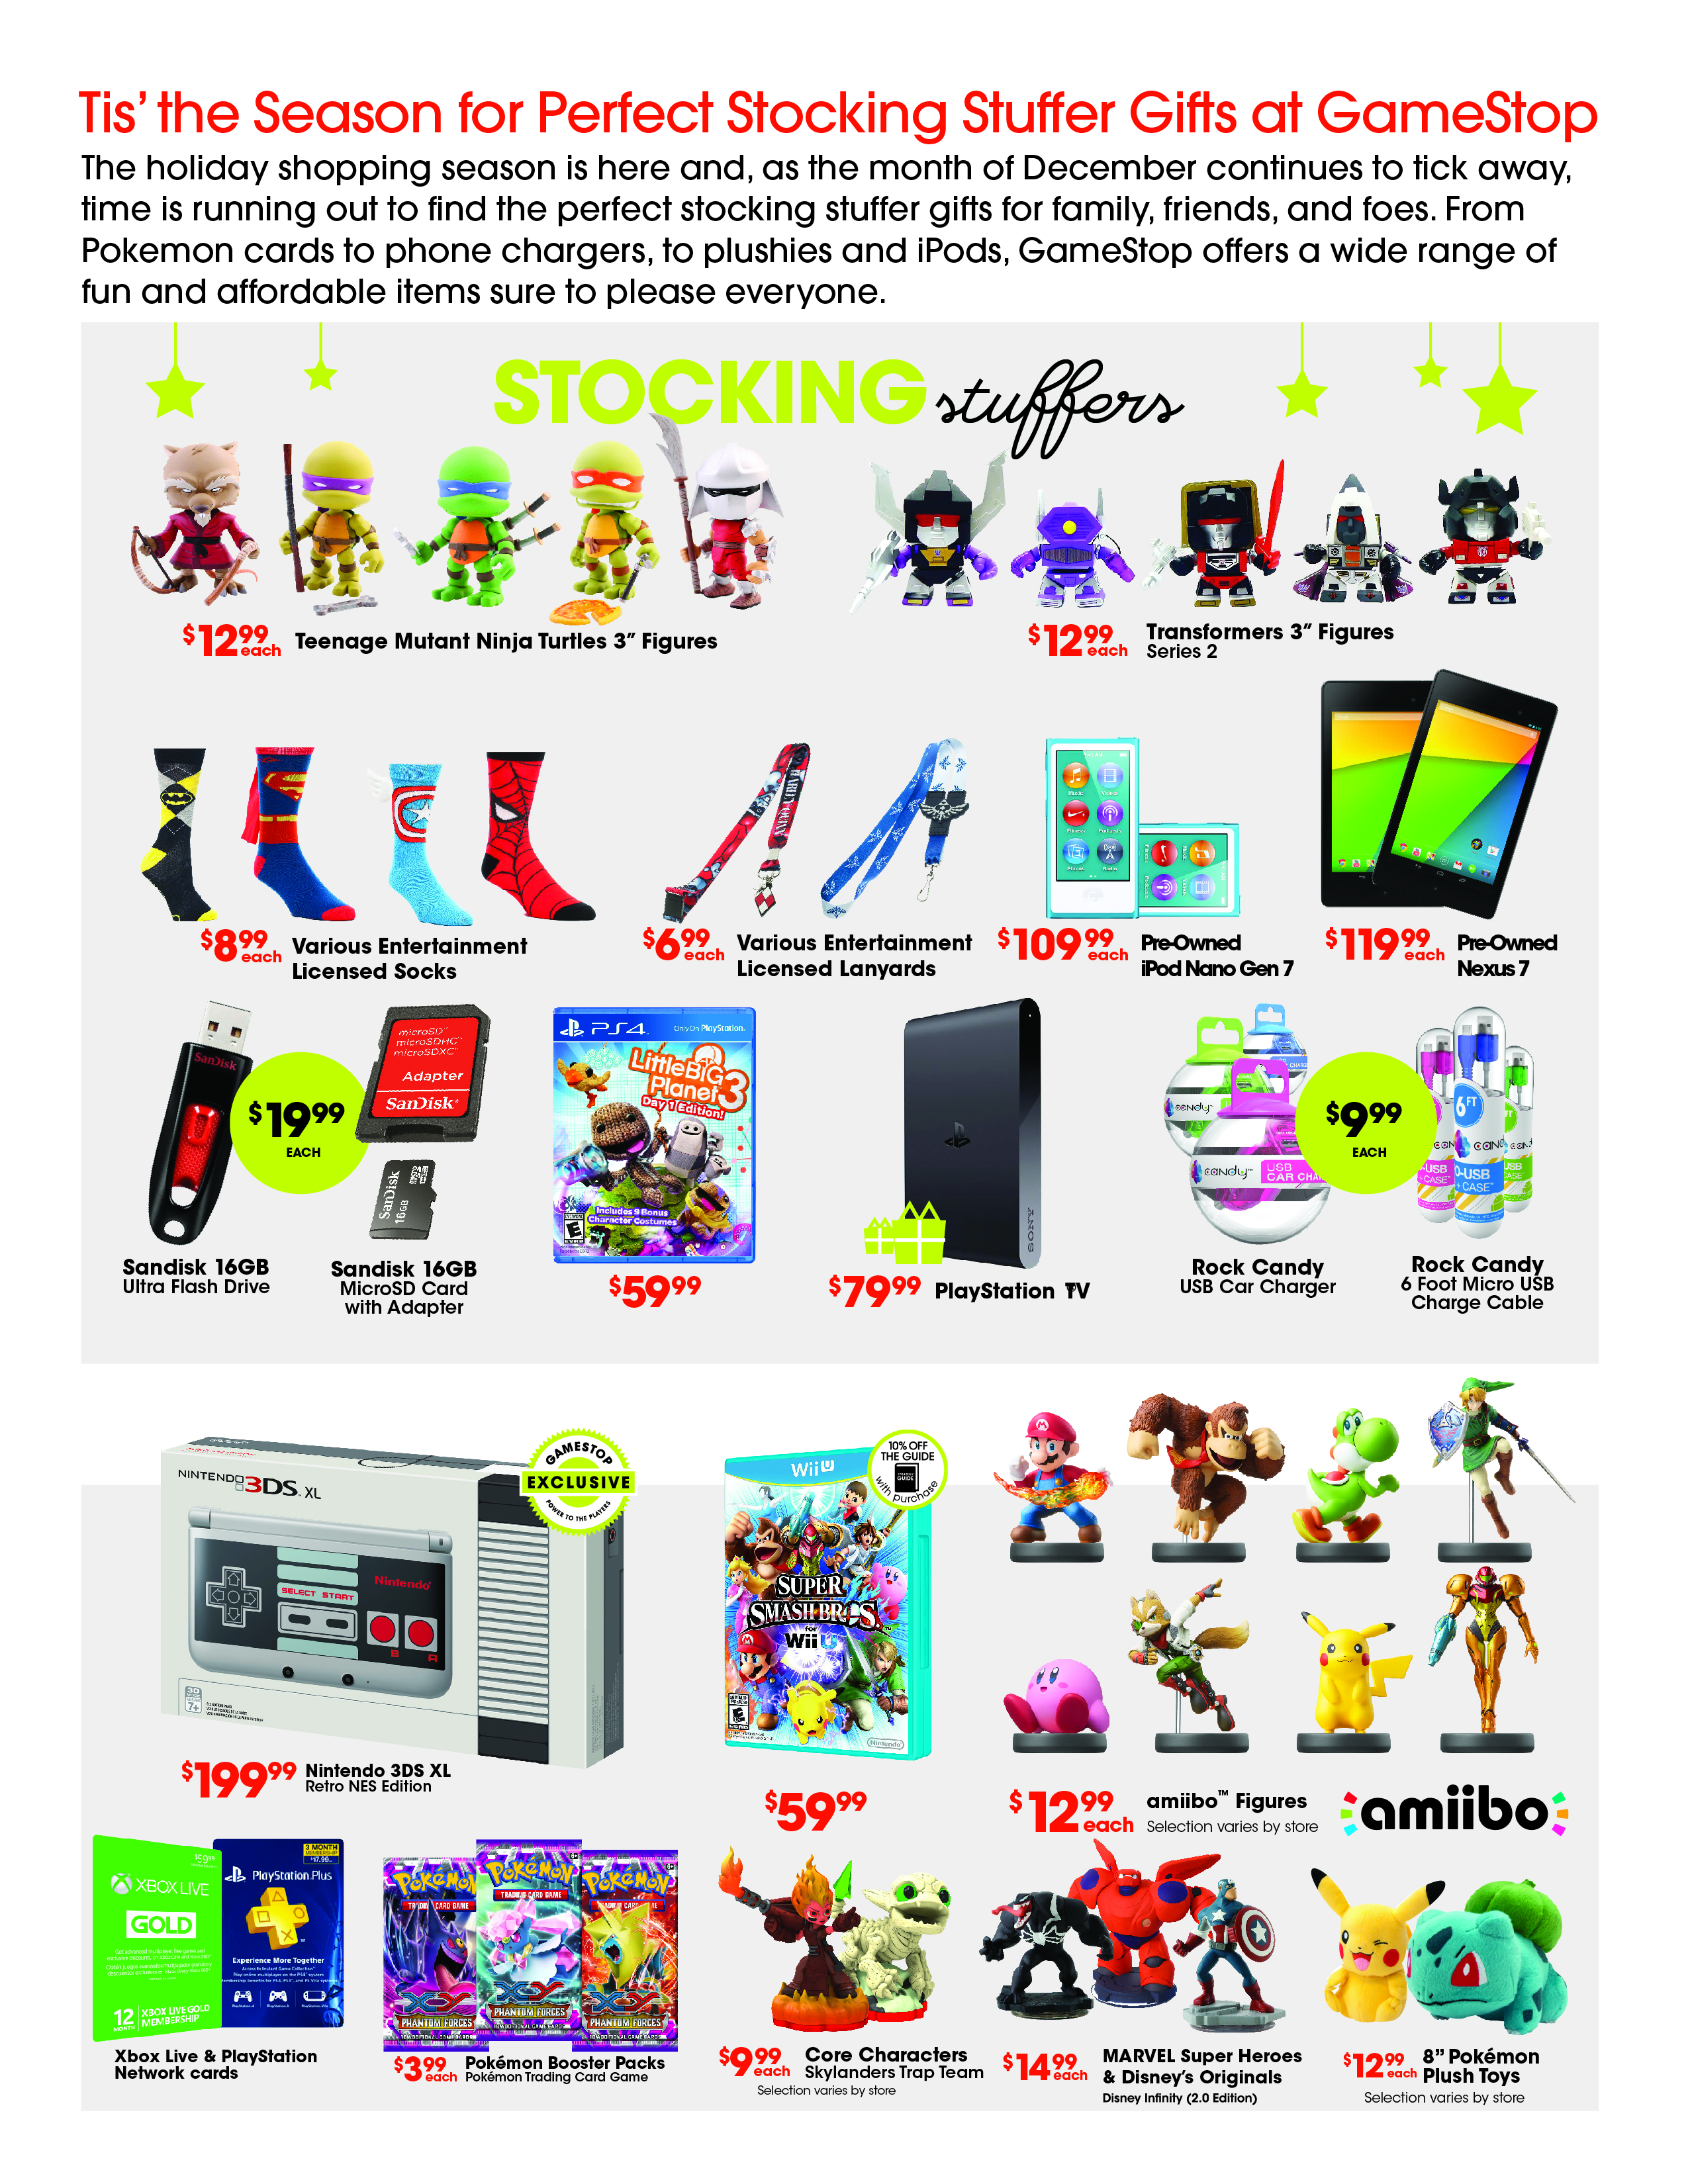 GameStop Holiday Deals Galore! - About A Mom